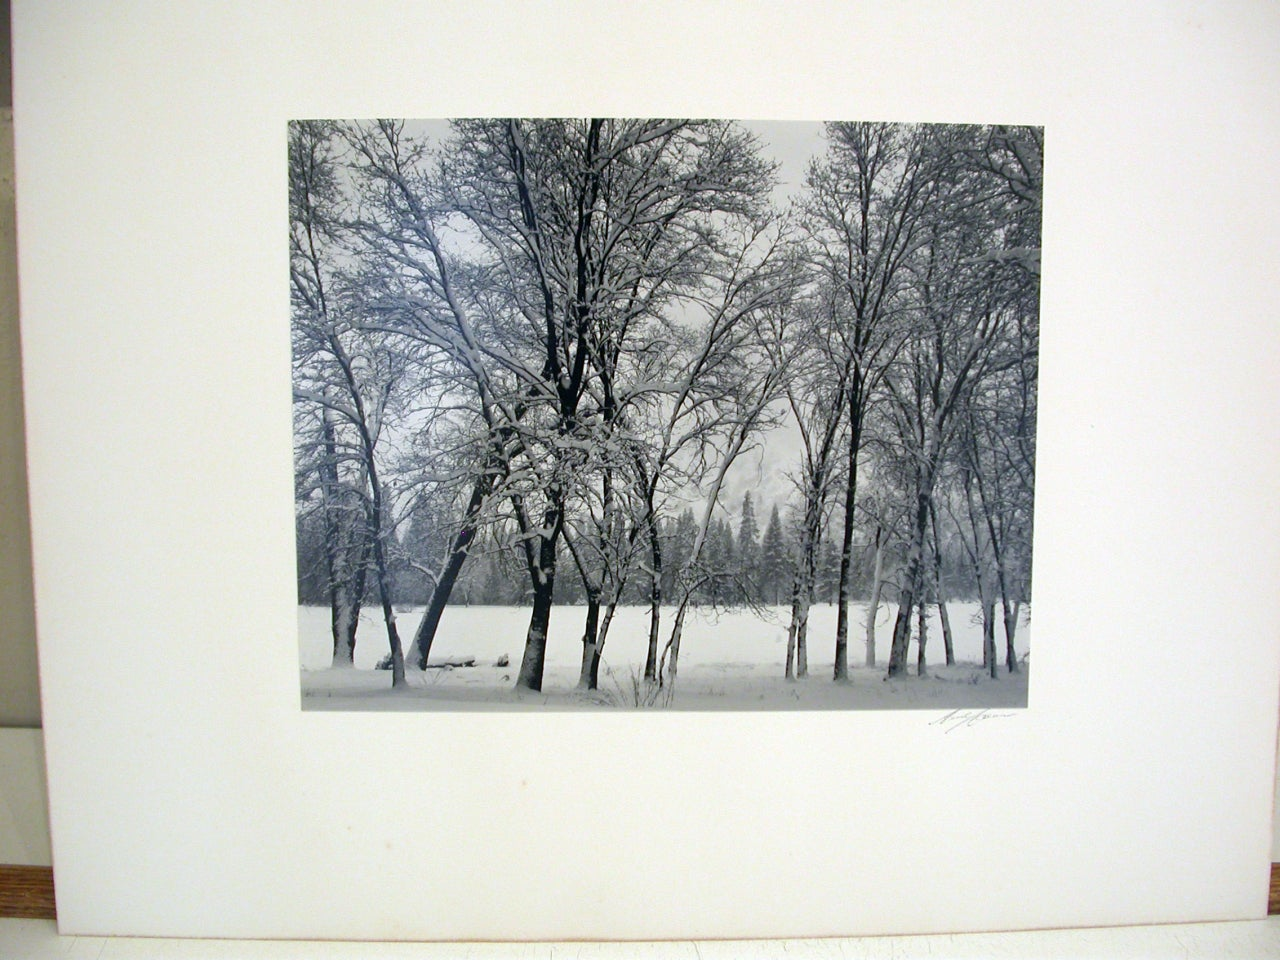 Young Oaks, Winter - Photograph by Ansel Adams